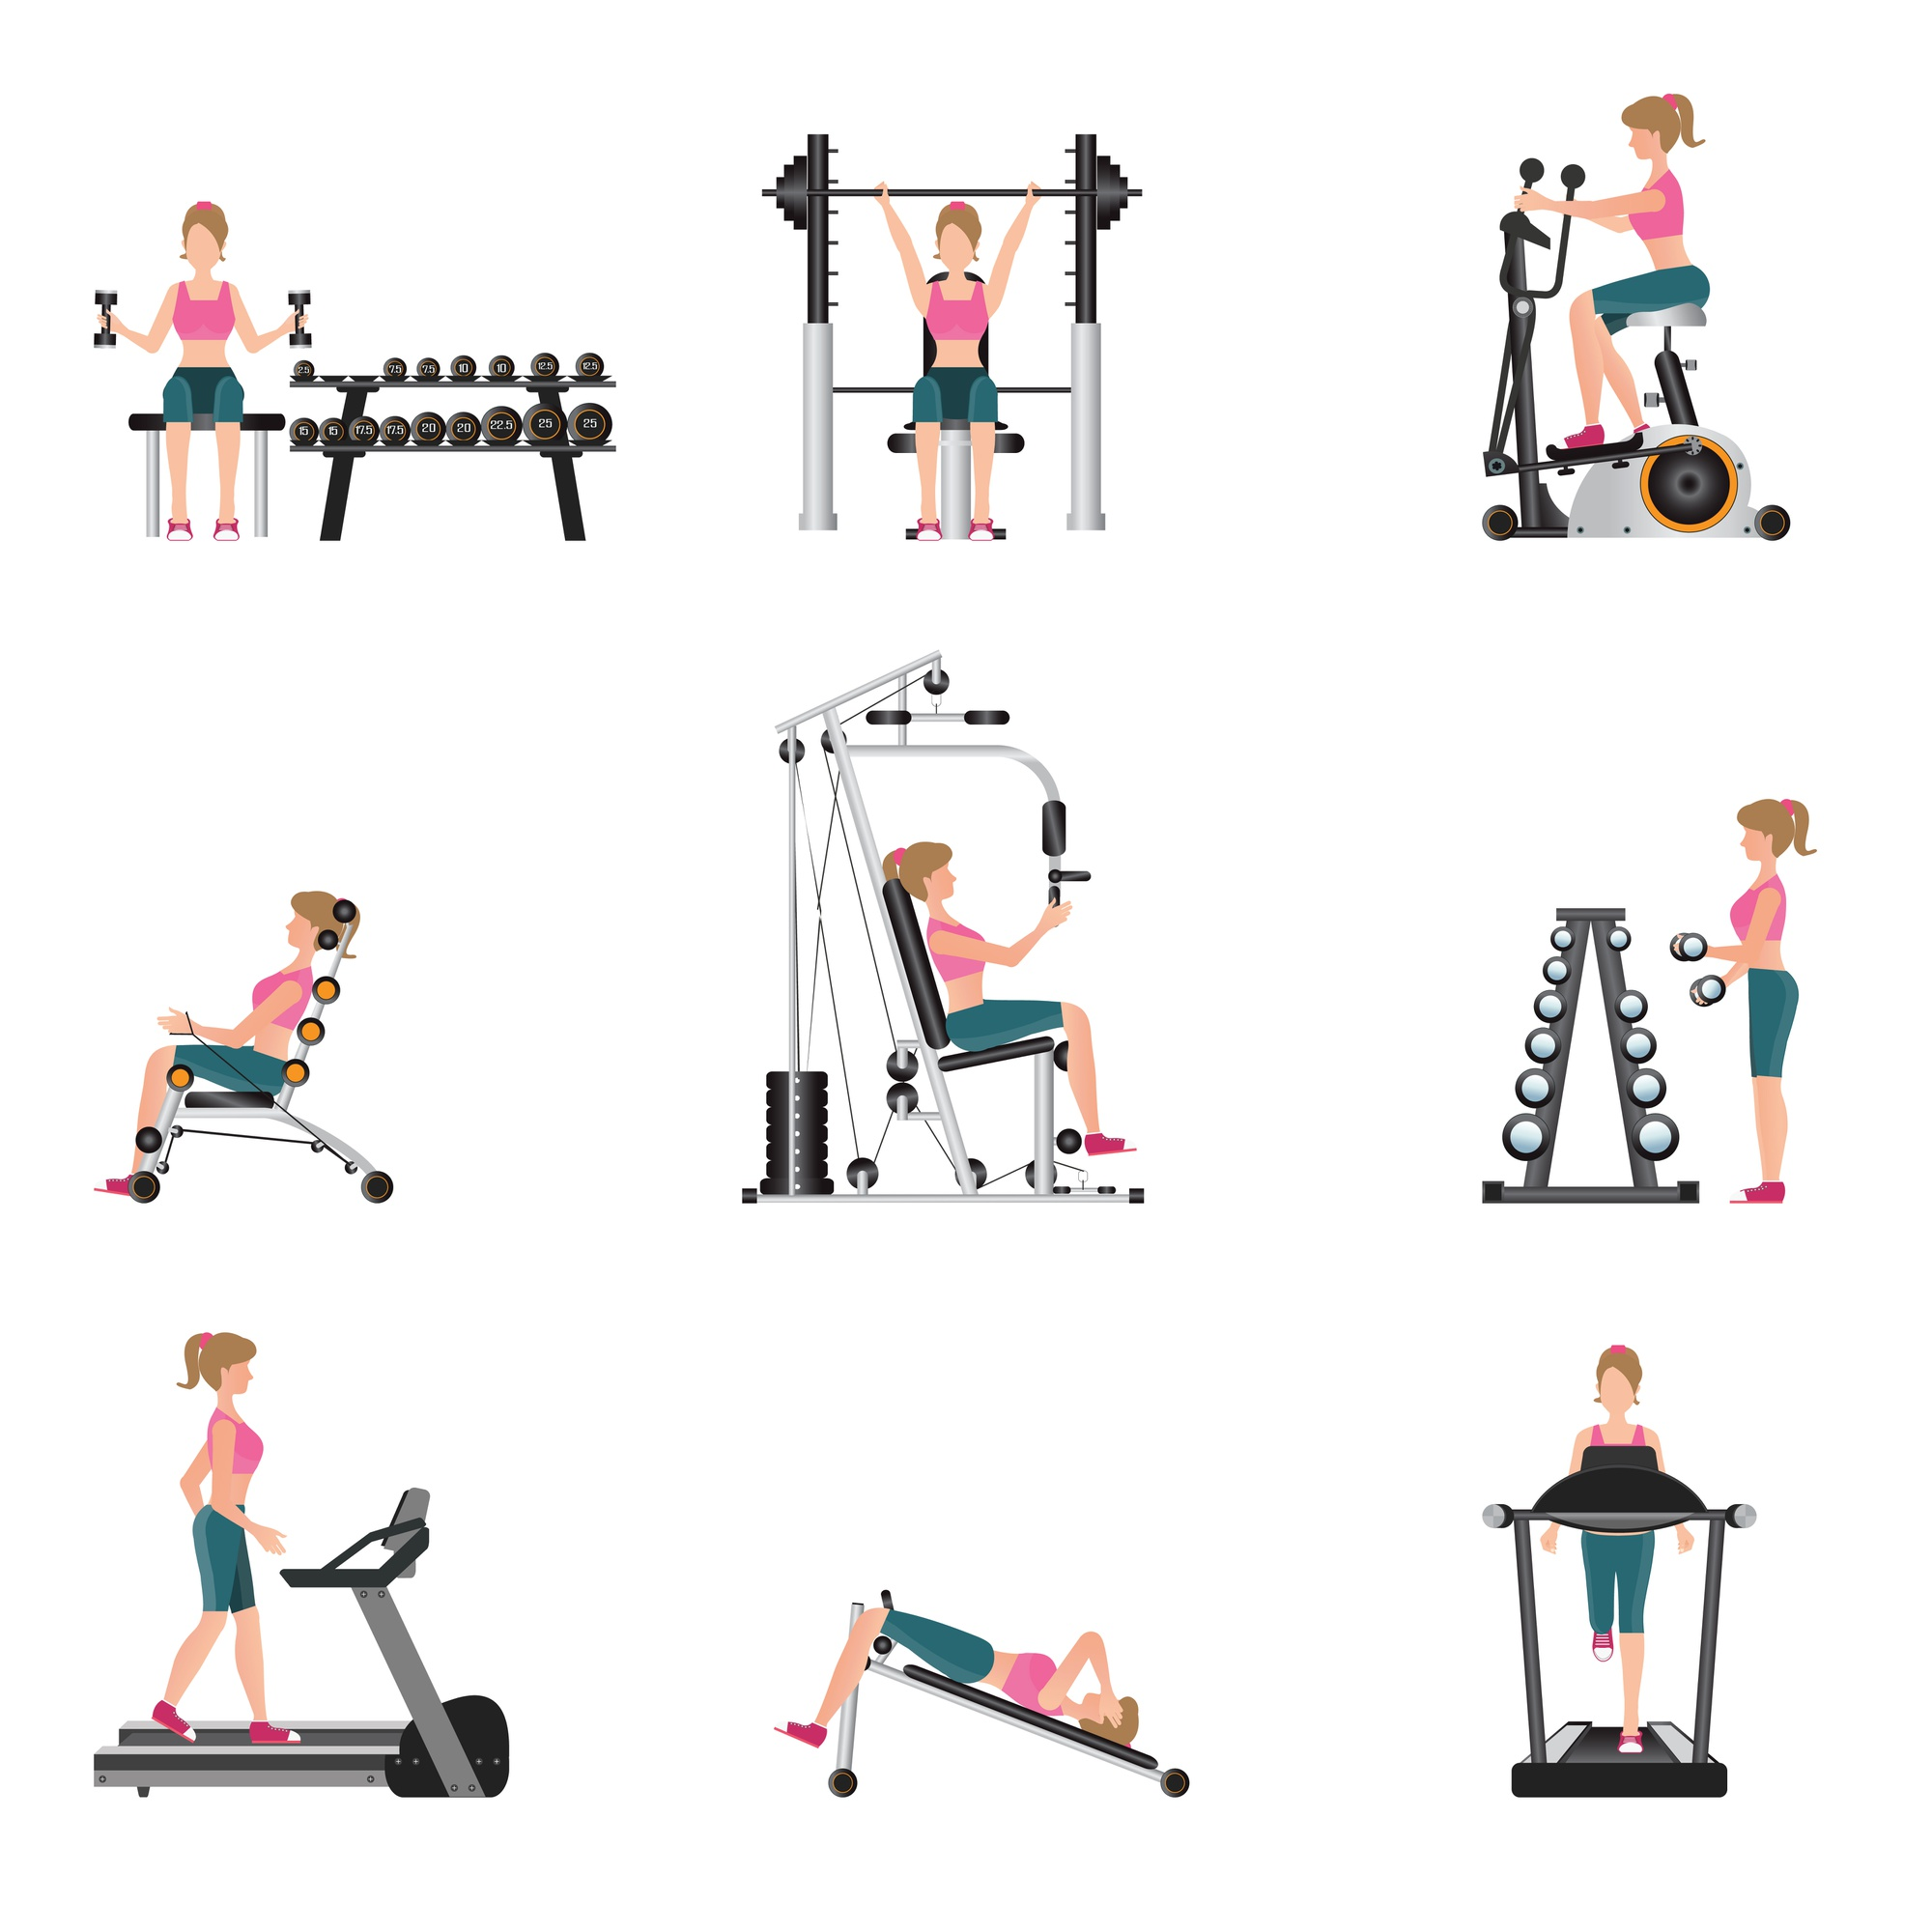 Fitness cardio exercise and equipment